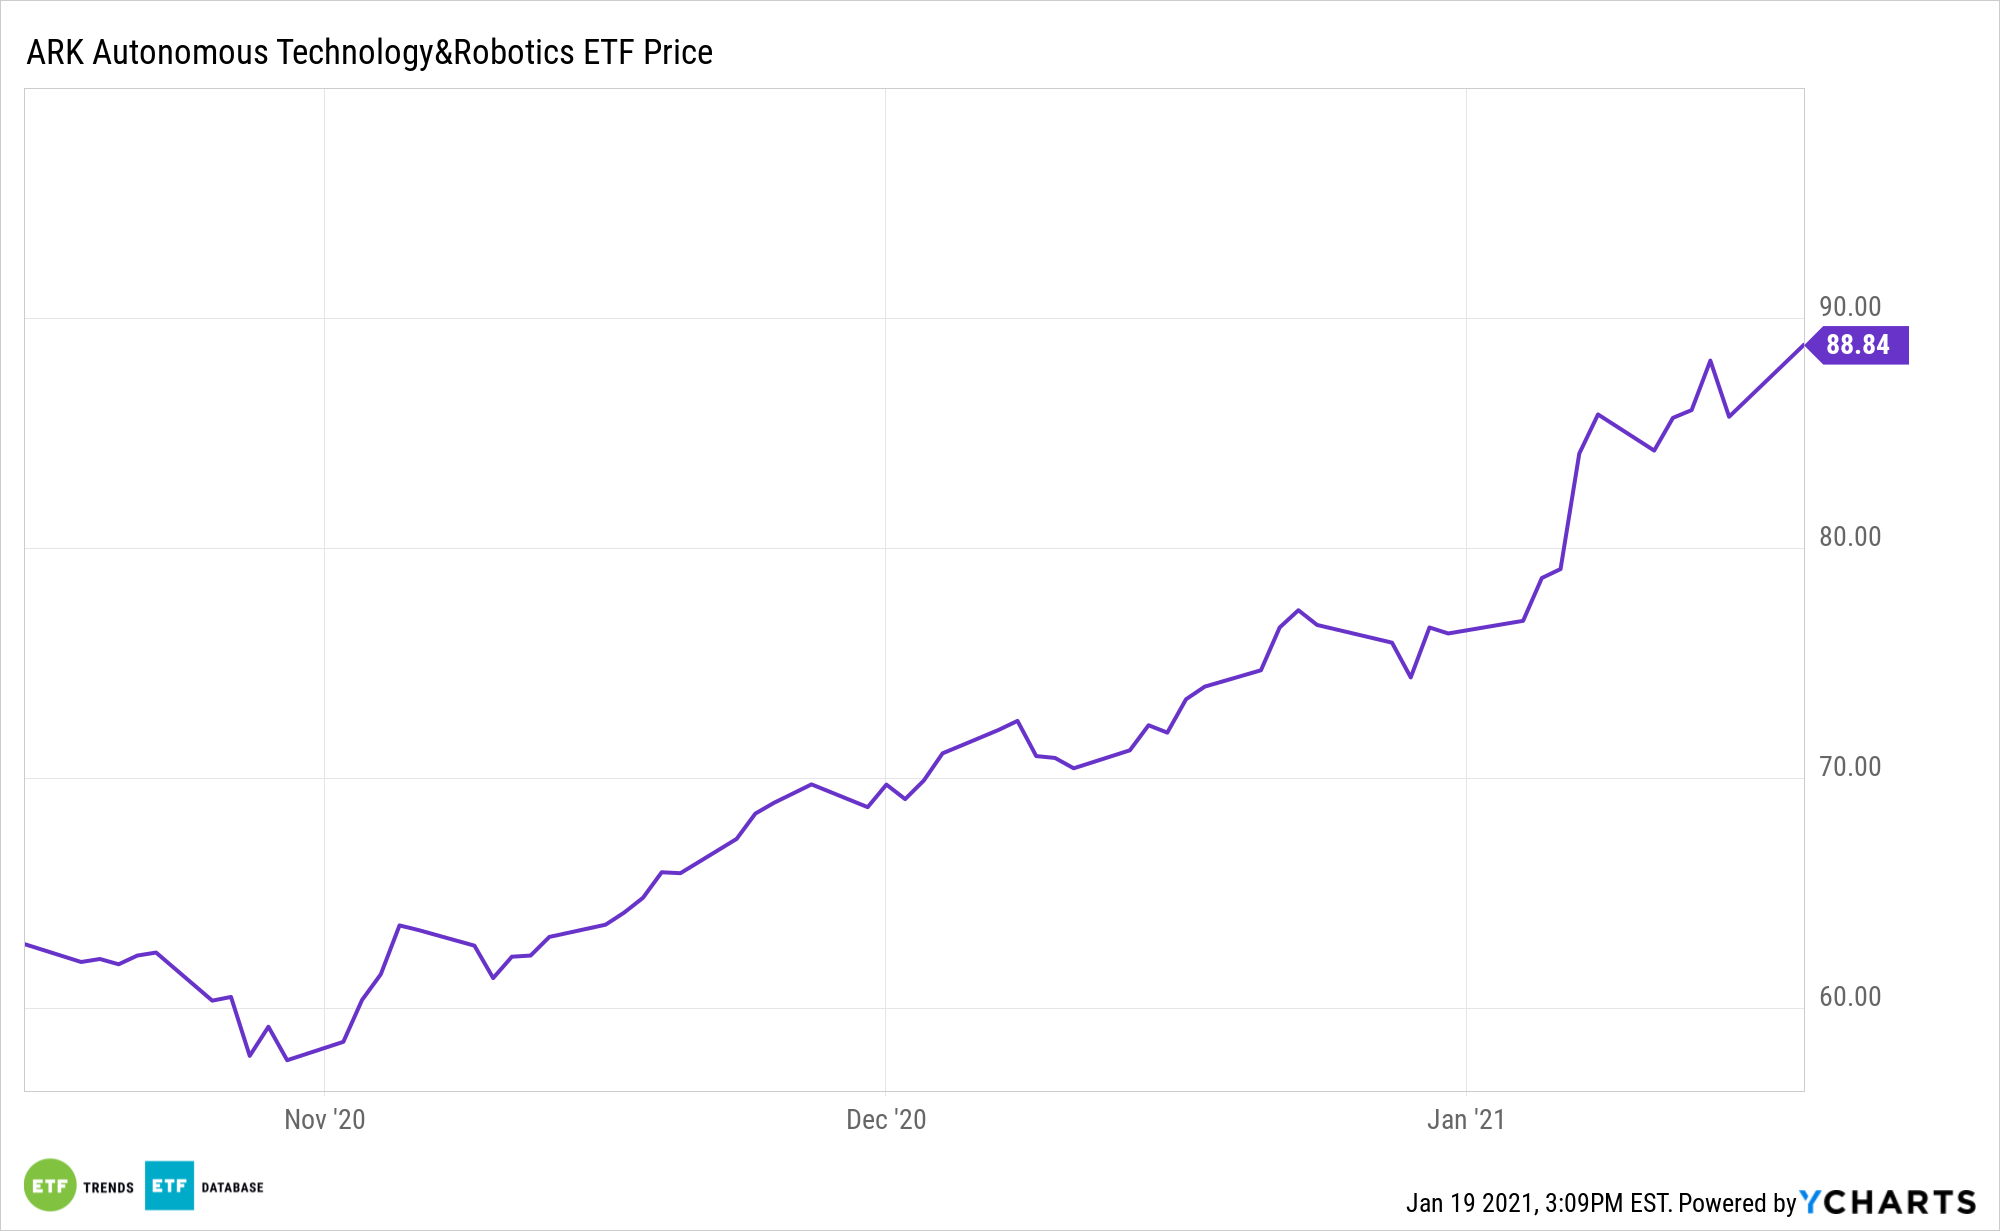 ARKQ 3 Month Performance